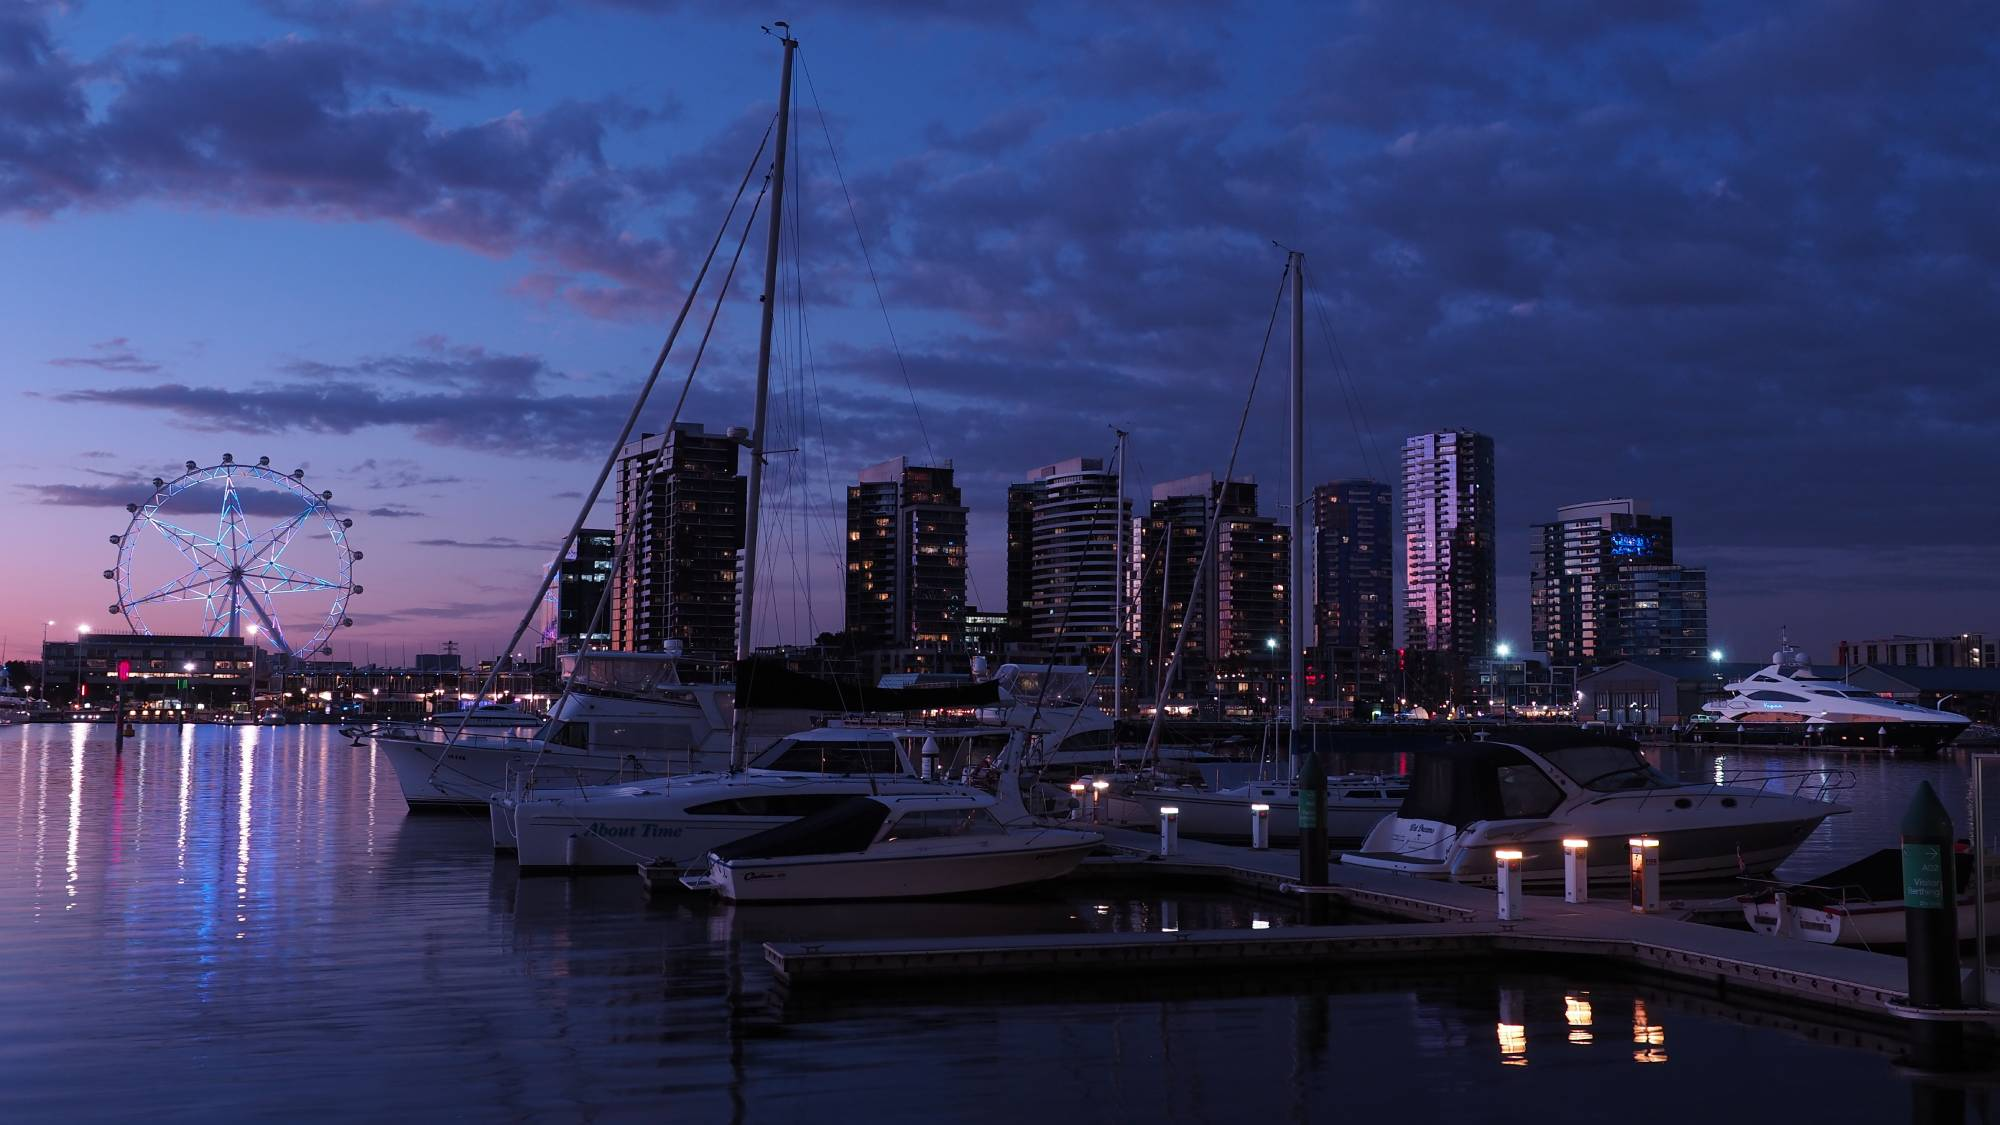 Marina at dusk, with high rises and a Ferris wheel lit up in the background, photographed with the Olympus OM-D E-M10 Mark II